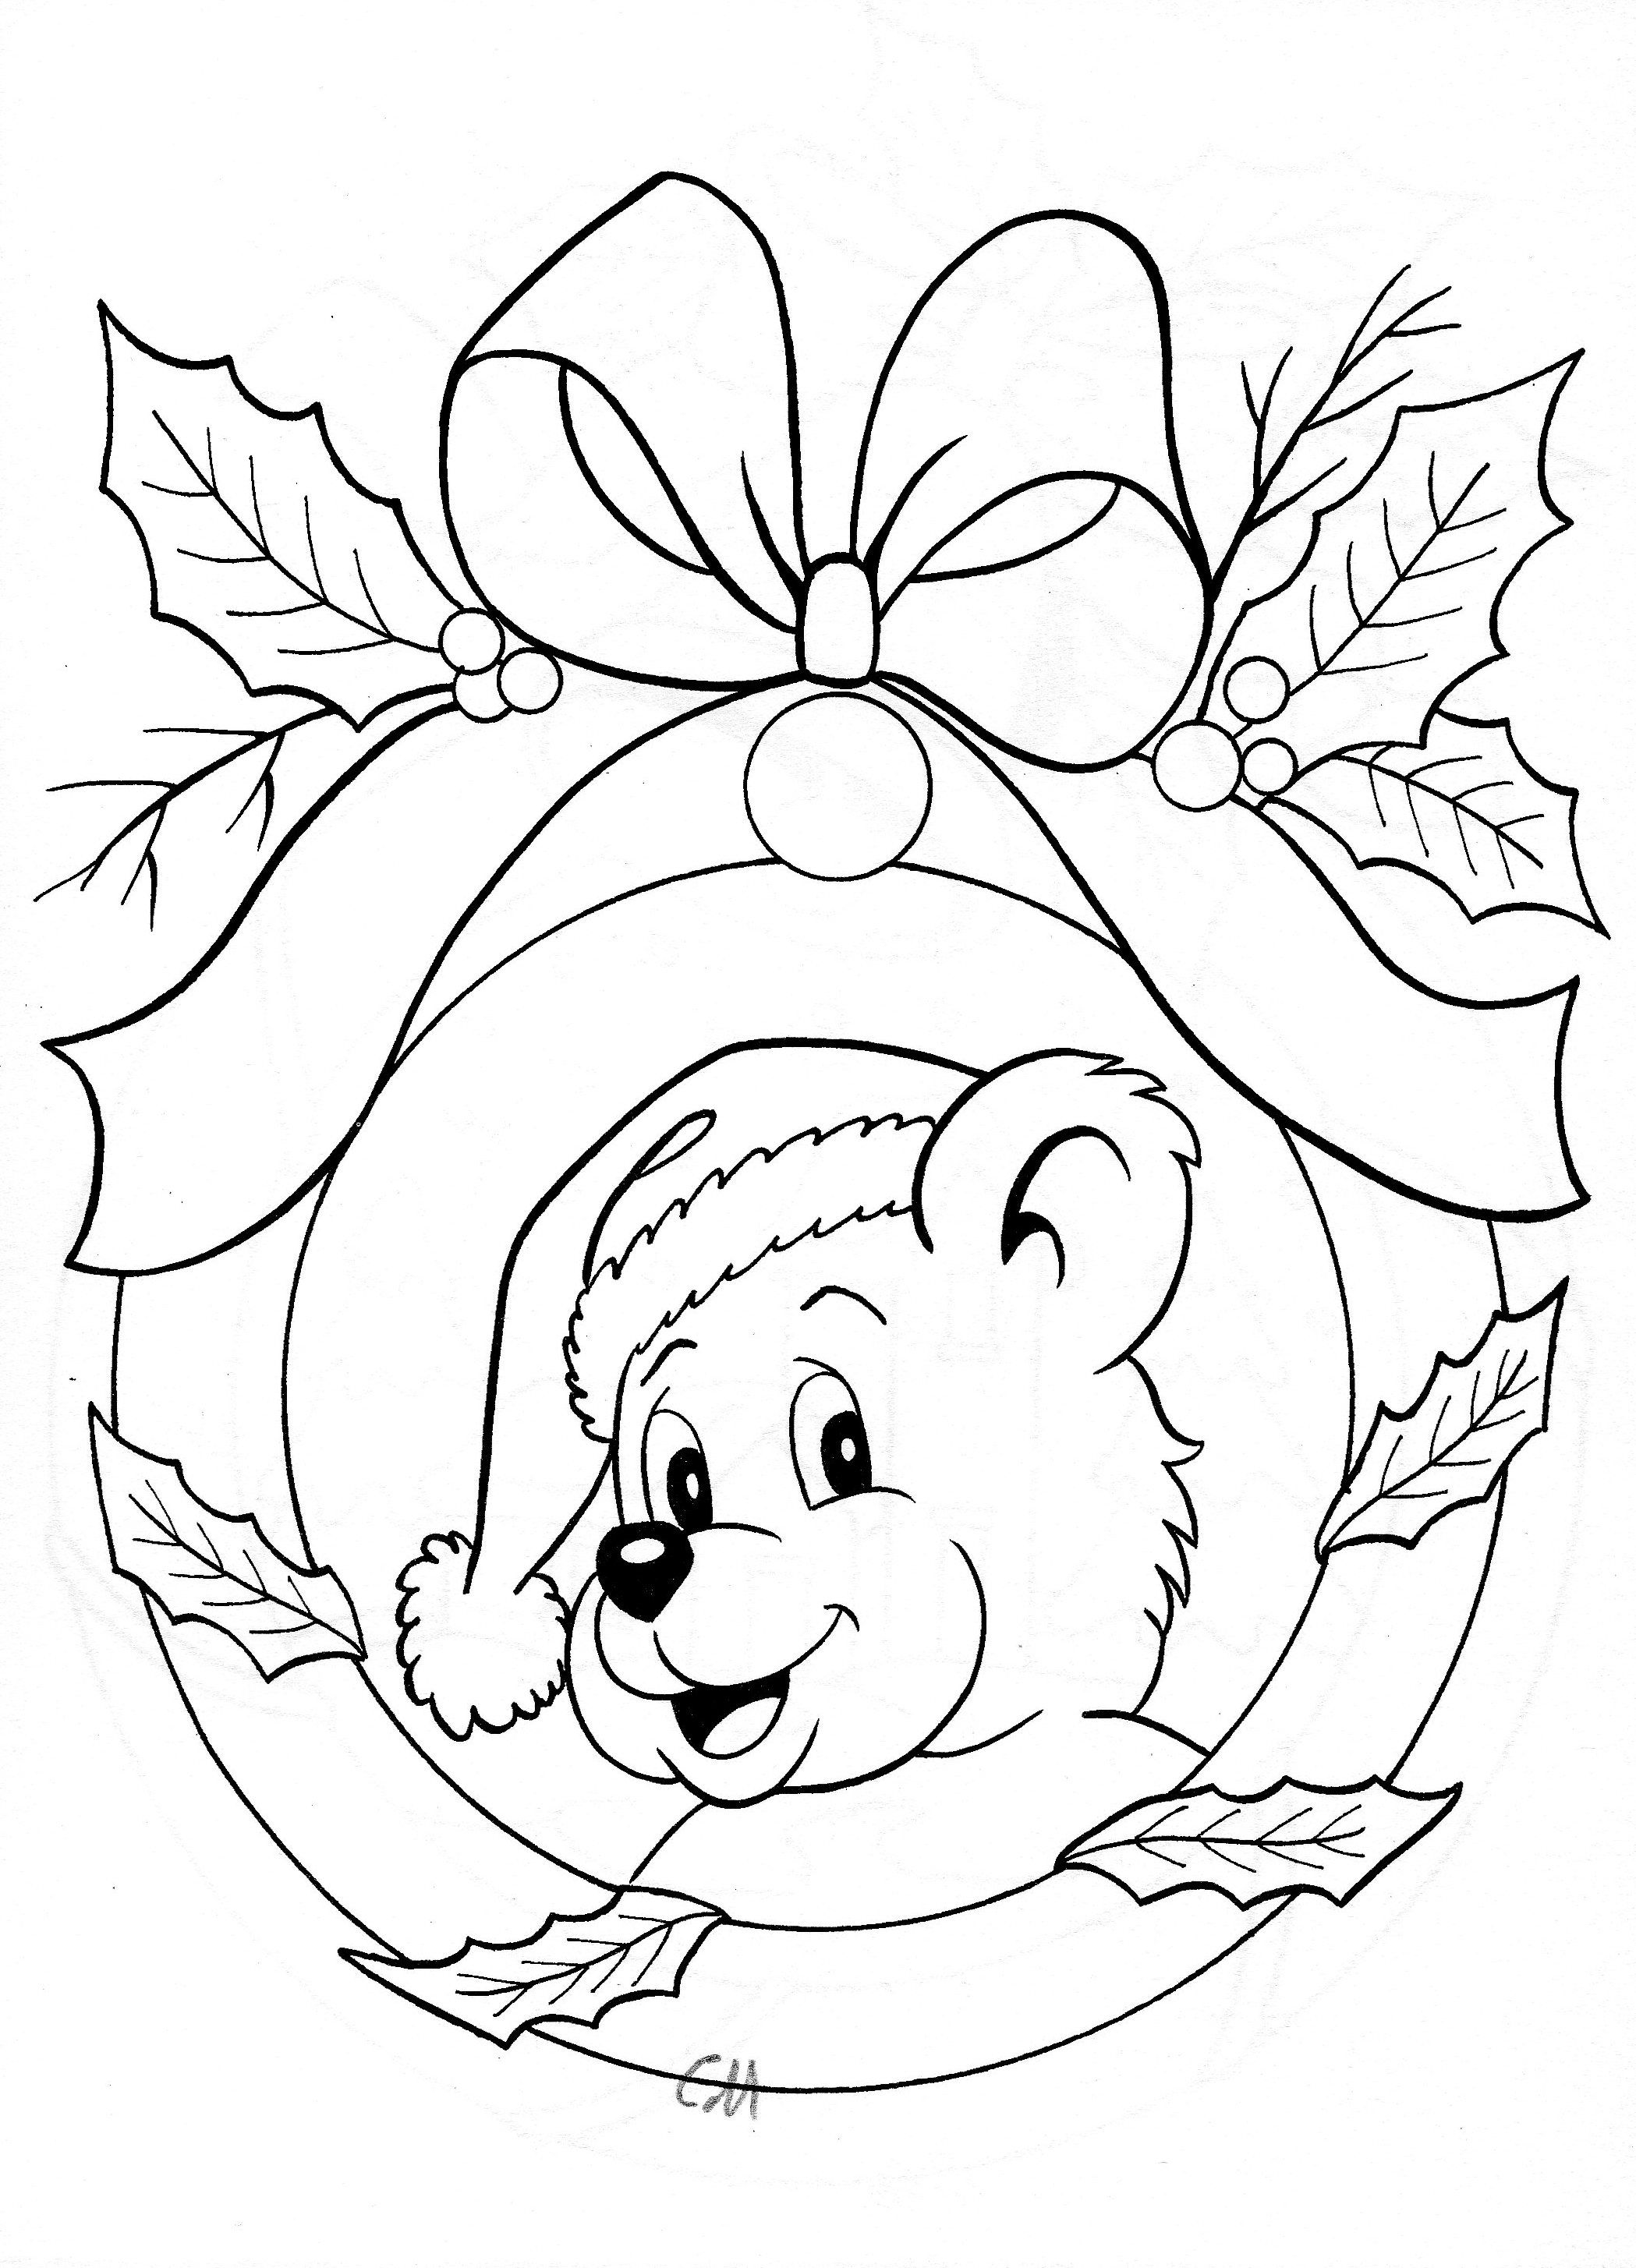 Great for an ornament | pergamino | Pinterest | Christmas coloring ...